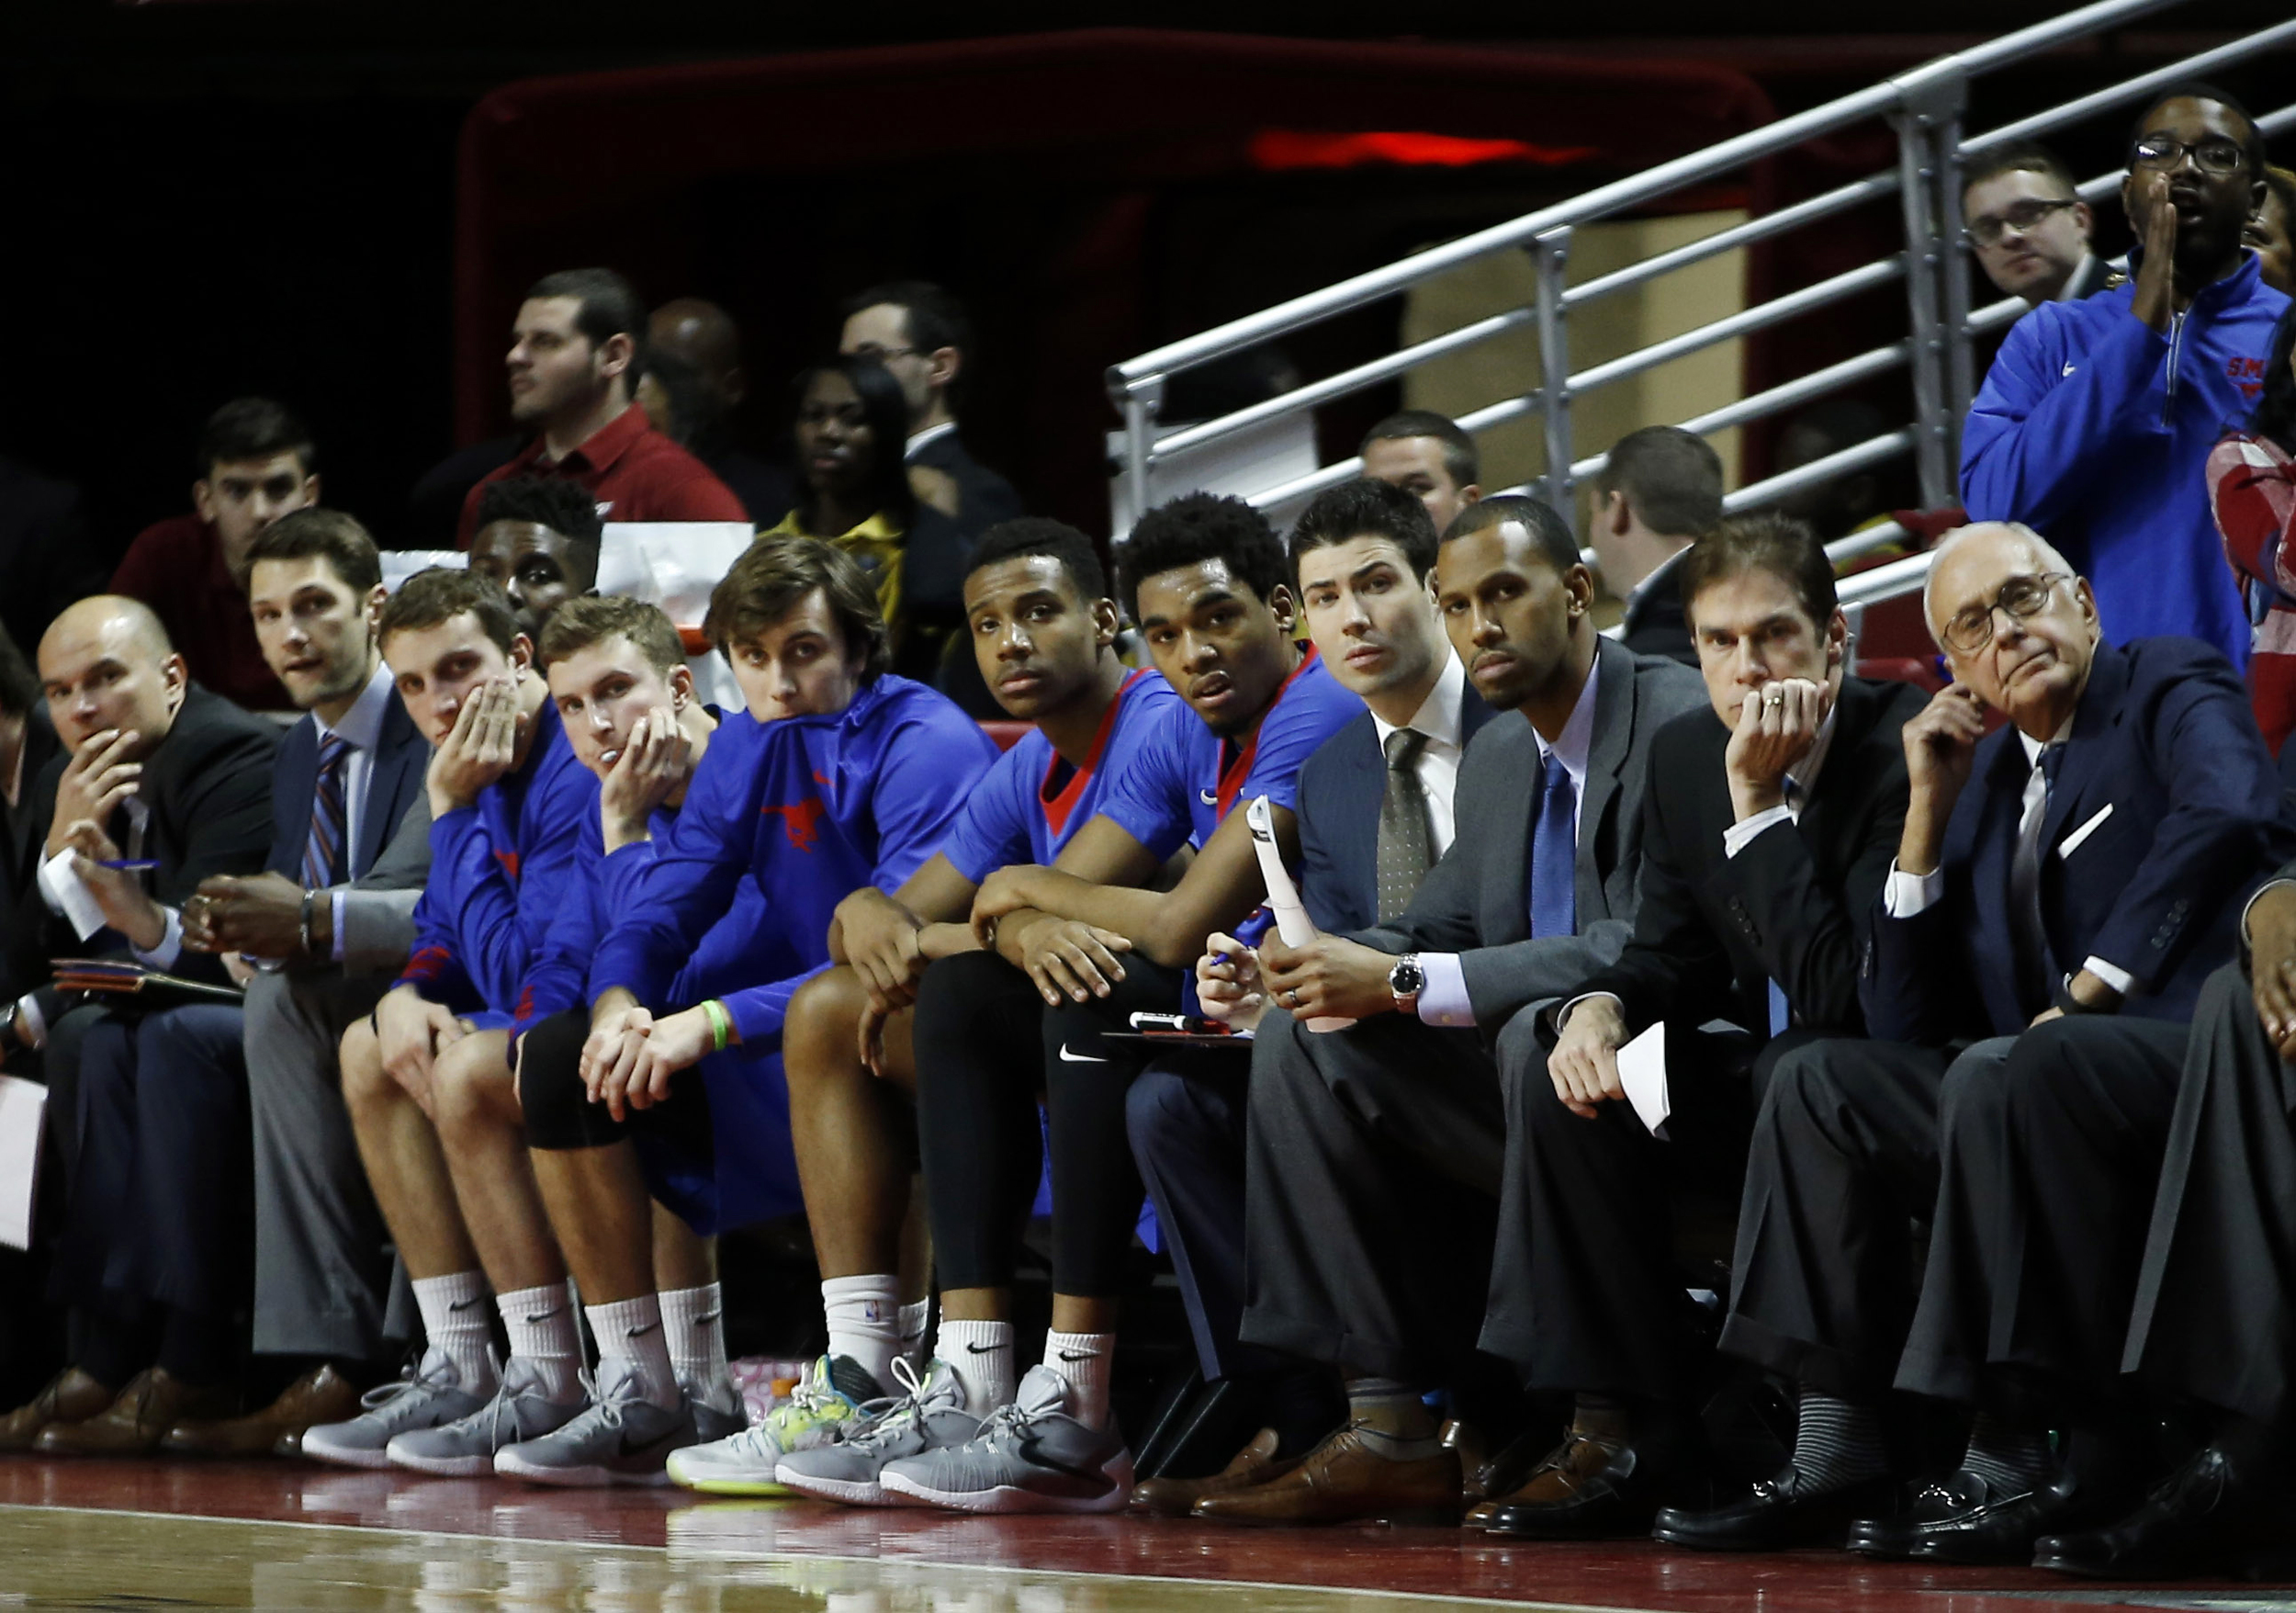 SMU players and coaches watch from the bench during the final minutes of an NCAA college basketball game against Temple, Sunday, Jan. 24, 2016, in Philadelphia. Temple won 89-80. (Matt Slocum/AP)